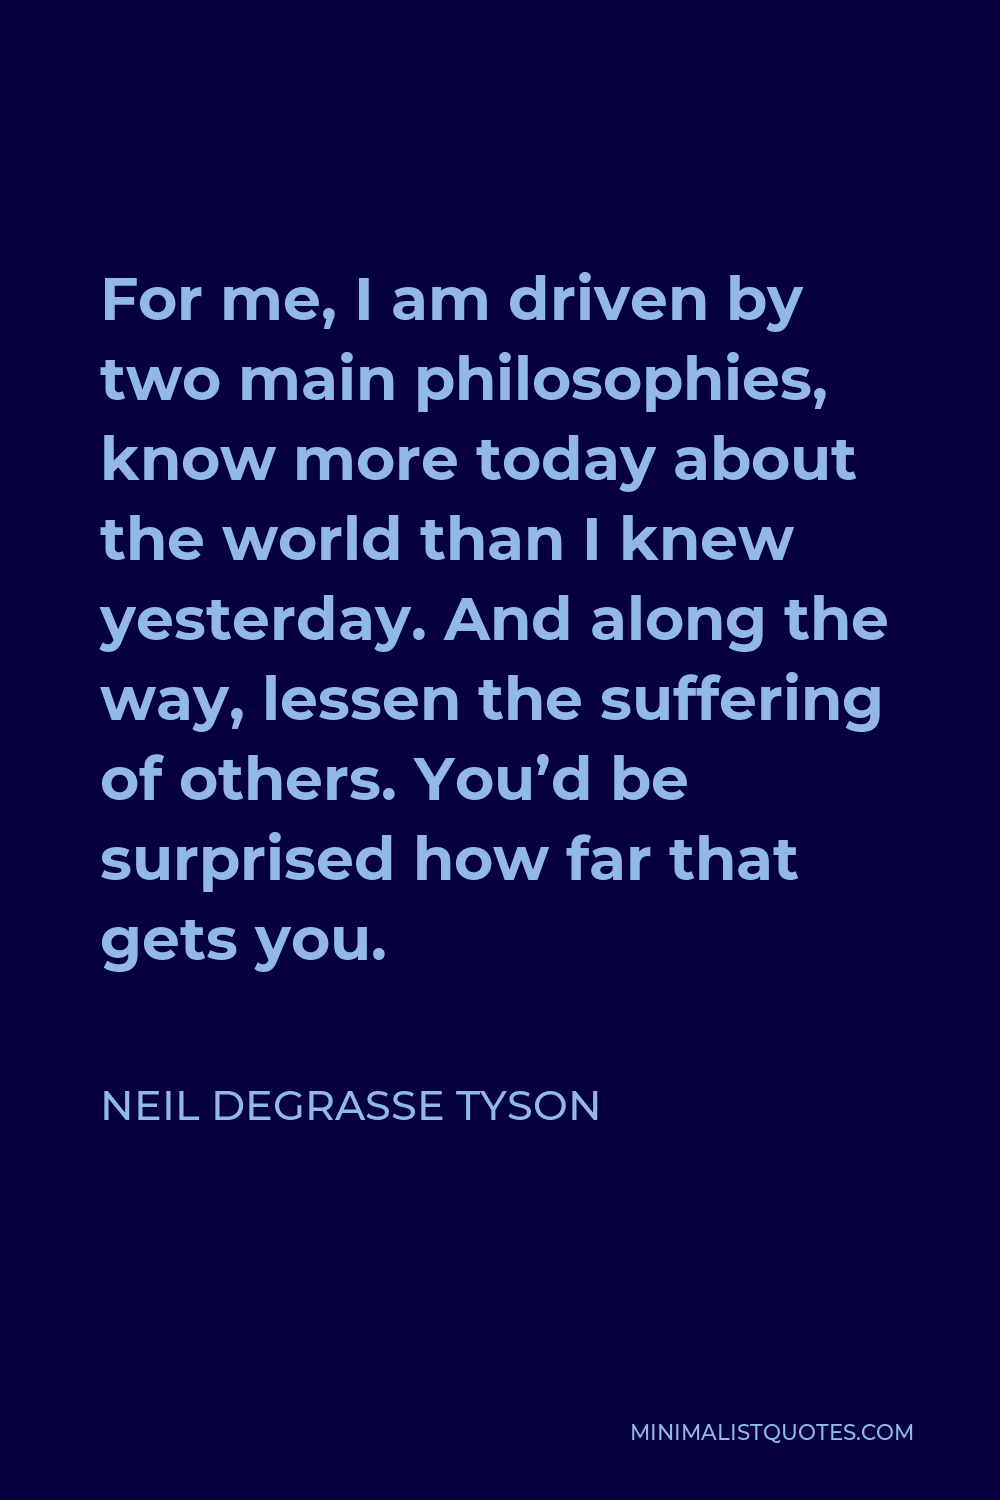 Neil deGrasse Tyson Quote - For me, I am driven by two main philosophies, know more today about the world than I knew yesterday. And along the way, lessen the suffering of others. You'd be surprised how far that gets you.